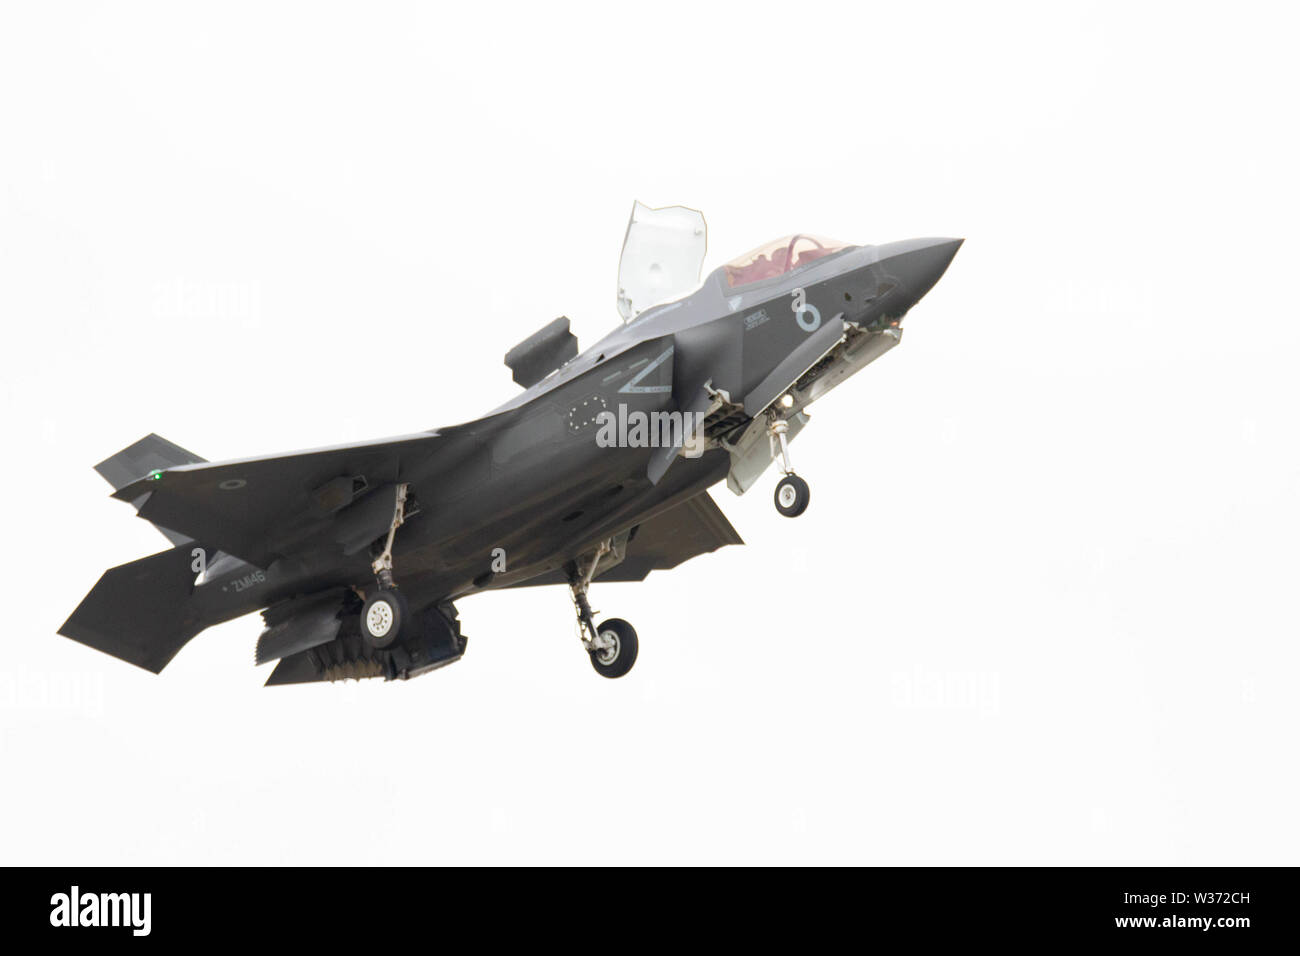 RNAS Yeovilton, Yeovilton, Somerset, UK. 13th July 2019 A F-35B Lightning from the joint RN / RAF 617 Sqadron made it first appearance at Yeovilton AIr Day. The aircraft will be flown from the Royal Navys New Carriers HMS Queen Elizabeth which becomes operational next year Credit: Photographing North/Alamy Live News Stock Photo